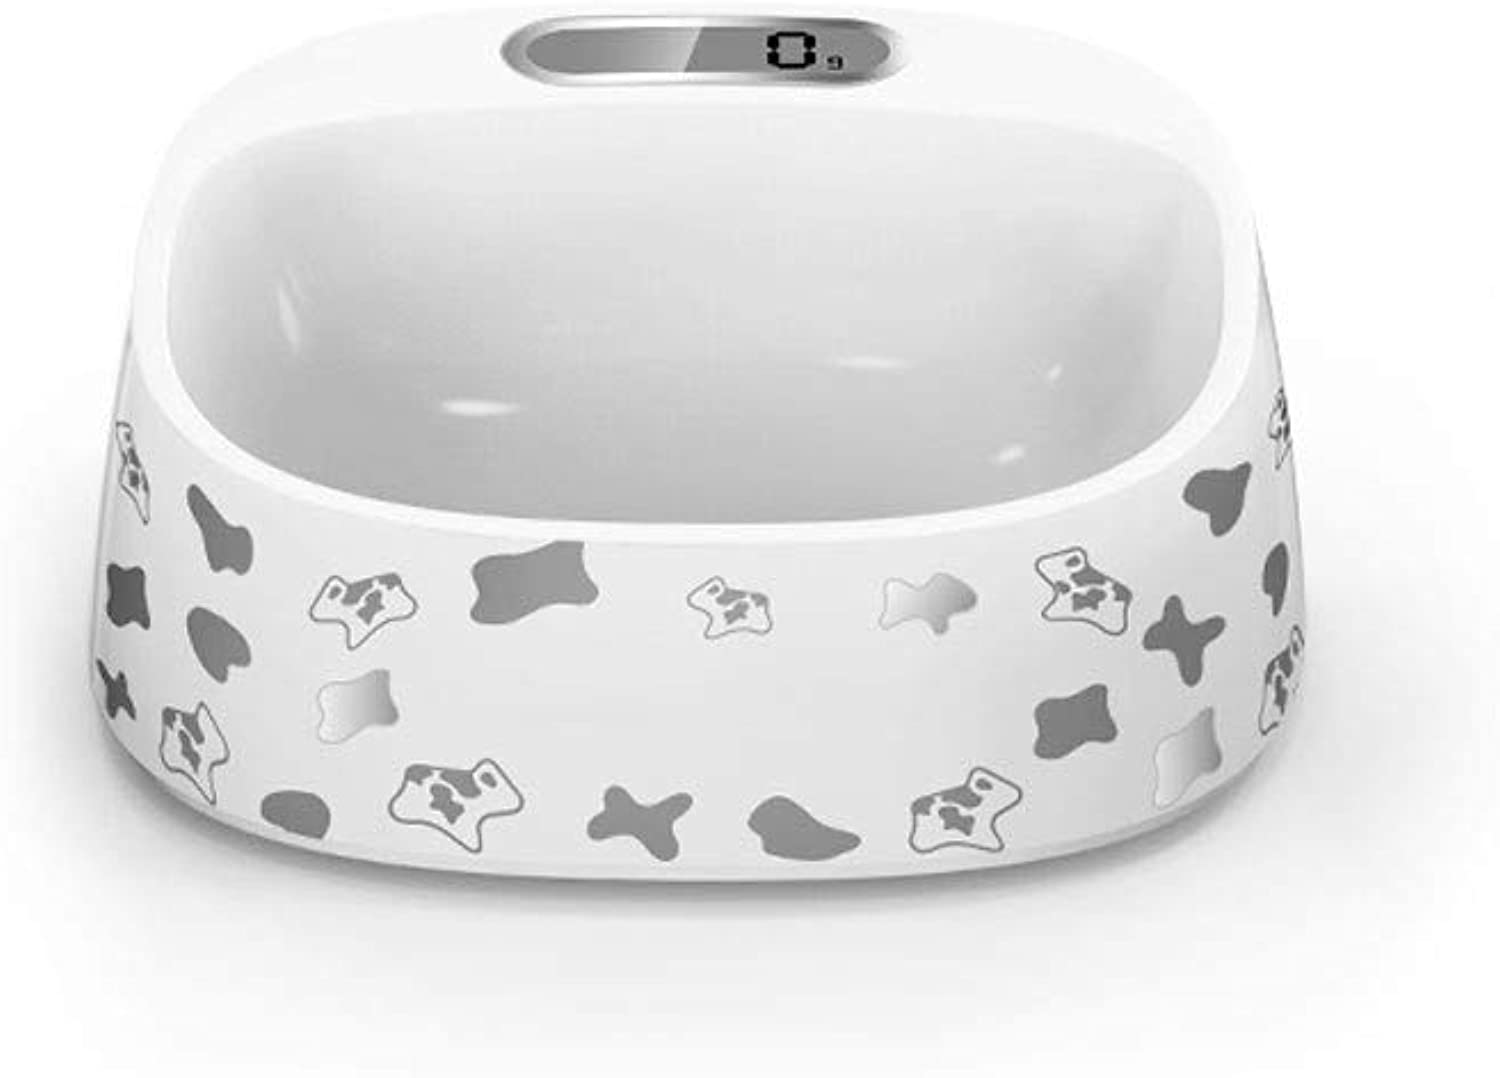 Pet Smart Weighing Cat Bowl Dog Bowl Dog Bowl Cat Bowl Dog Bowl Bowl Cat Bowl Bowl Can Be Weighed, Body Wash, Recommended Food Intake, Healthy Feeding ( color   C )